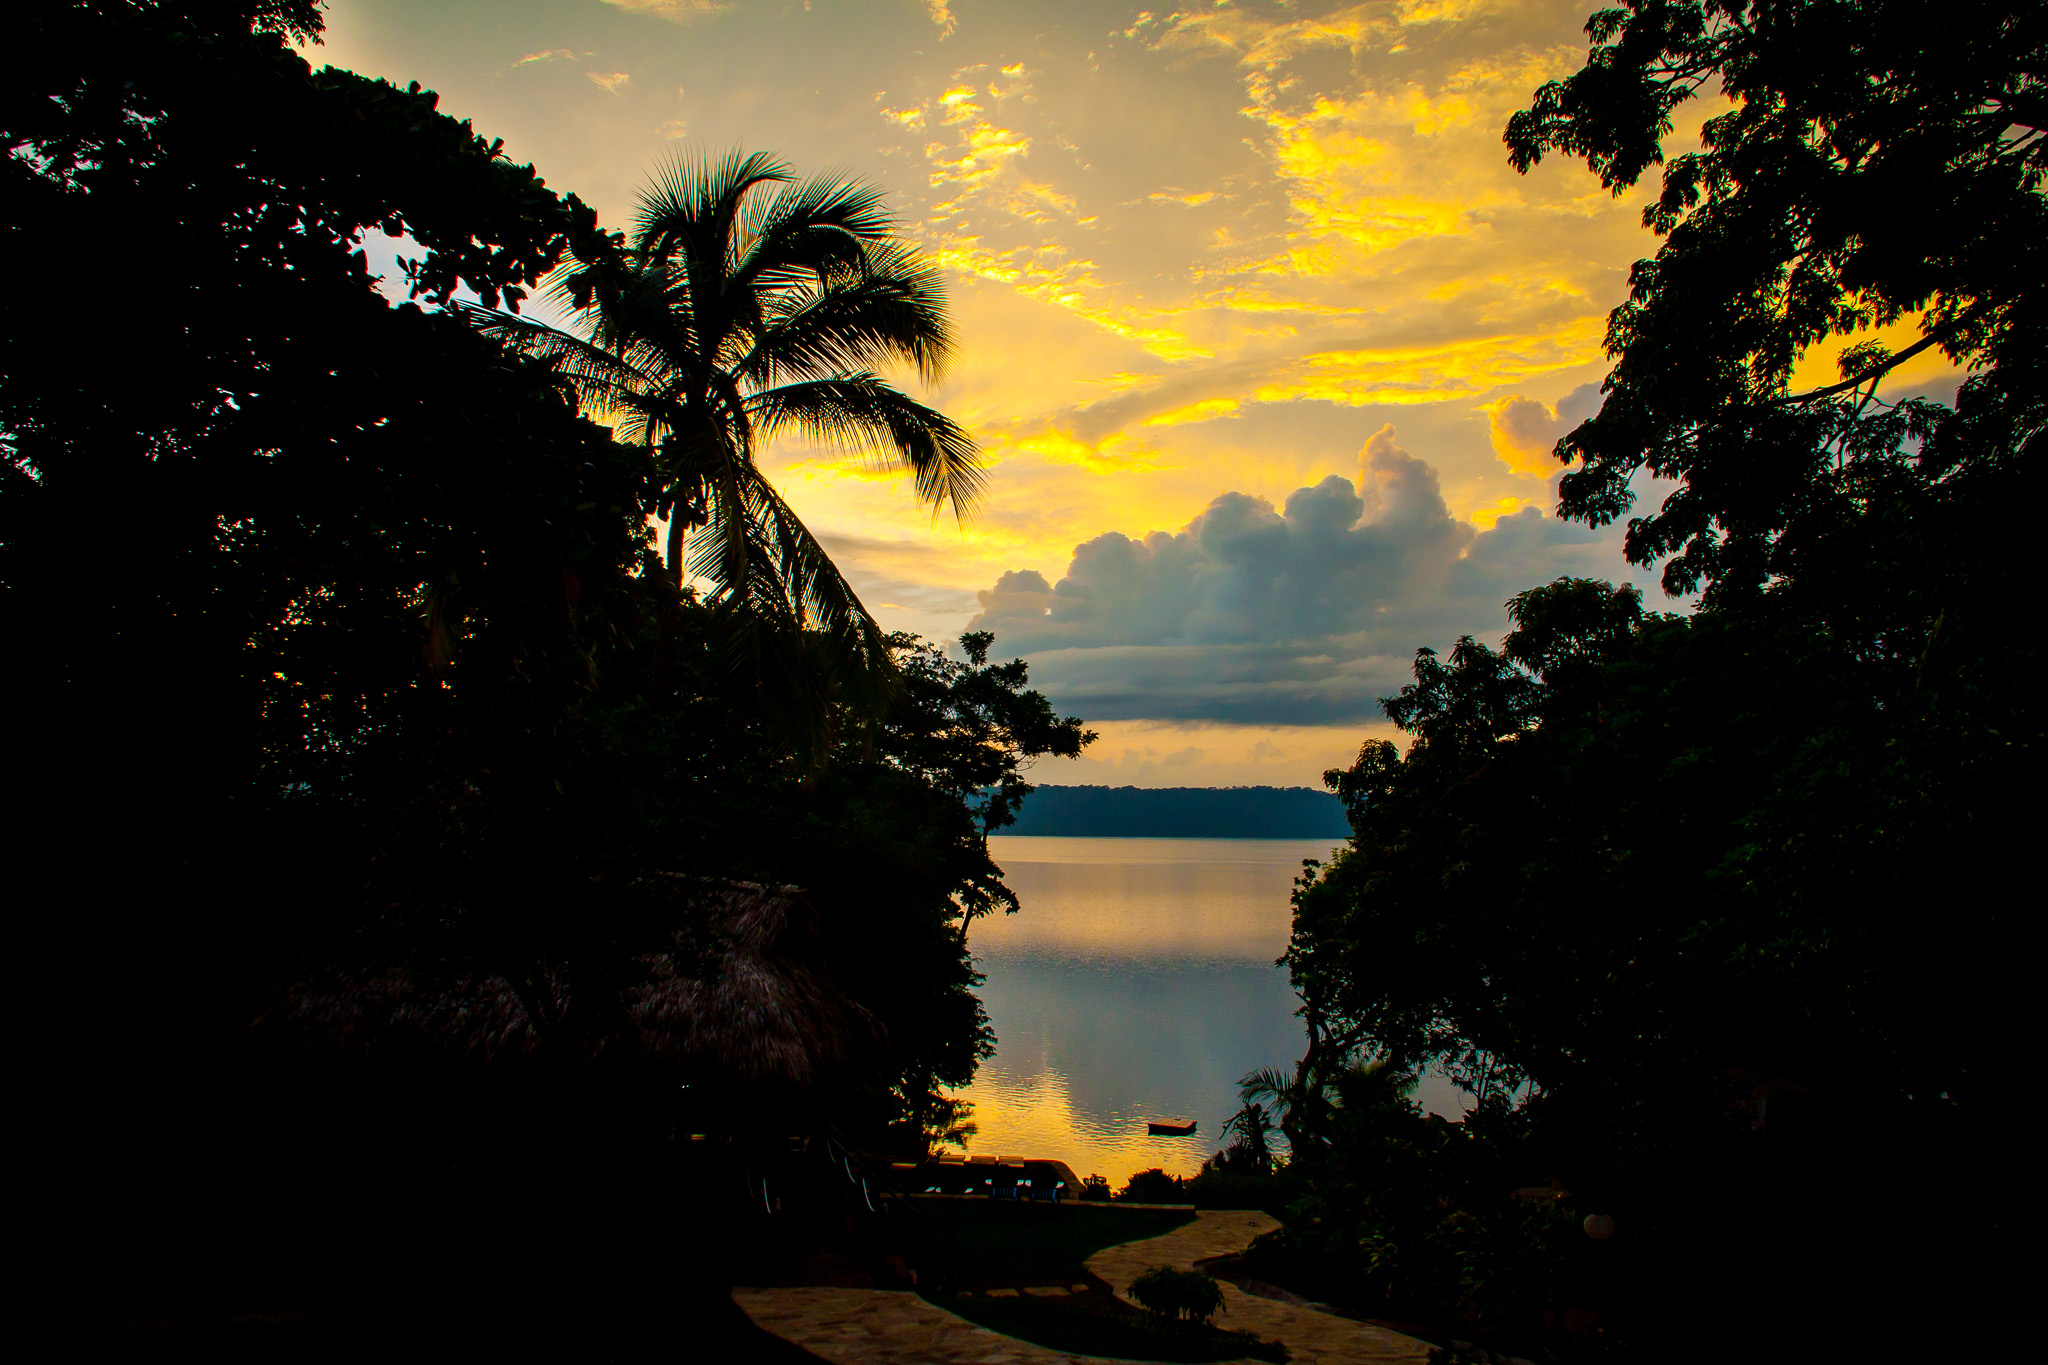 Laguna de Apoyo Sunrise Over the Lake